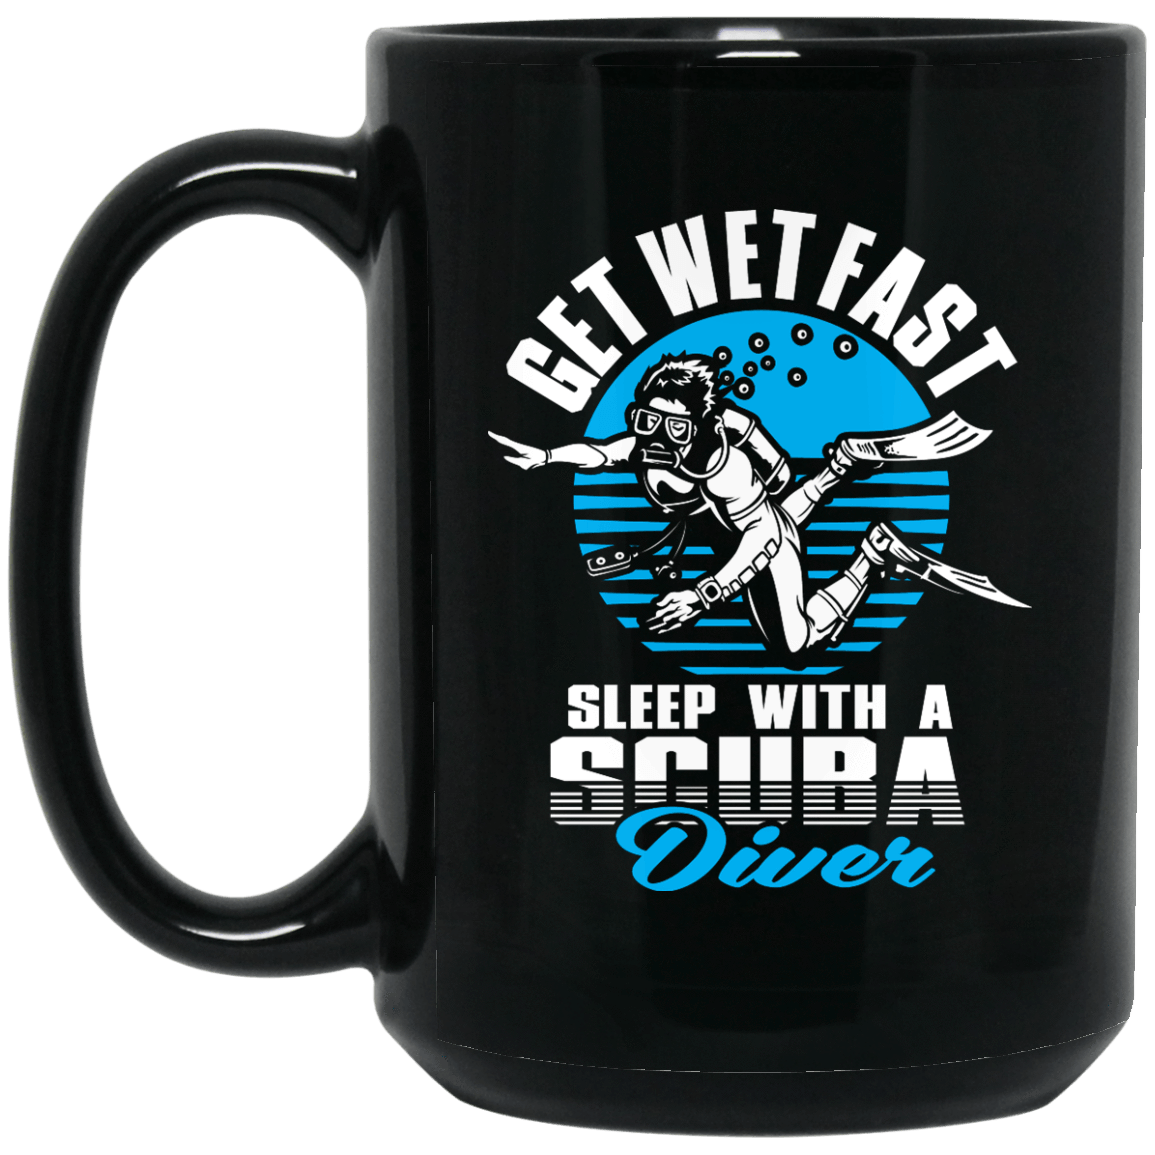 Get Wet Fast Sleep With A Scuba Diver Black Mug